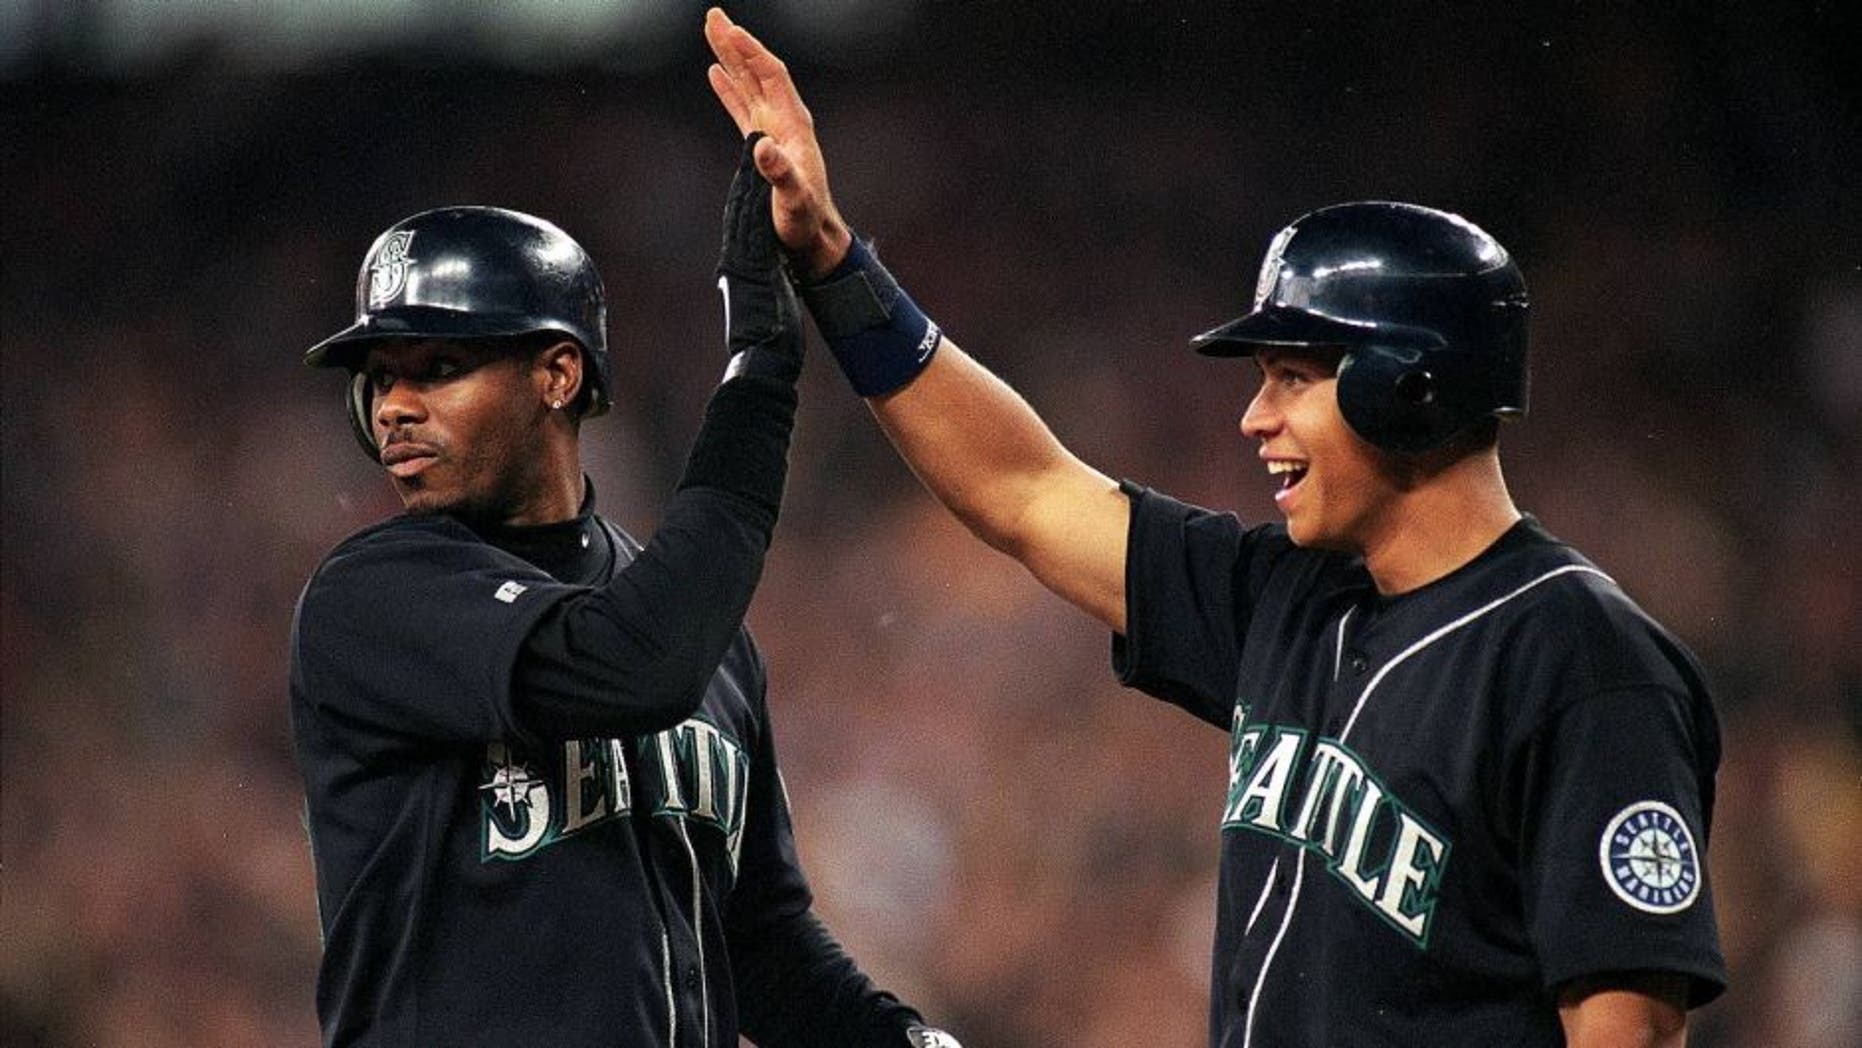 17 Jul 1999: Ken Griffey Jr. #24 and Alex Rodriguez #3 of the Seattle Mariners hi-fiveing each other during the game against the San Diego Padres at Safeco Field in Seattle, Washington. The Mariners defeated the Padres 9-1. Mandatory Credit: Otto Greule Jr. /Allsport